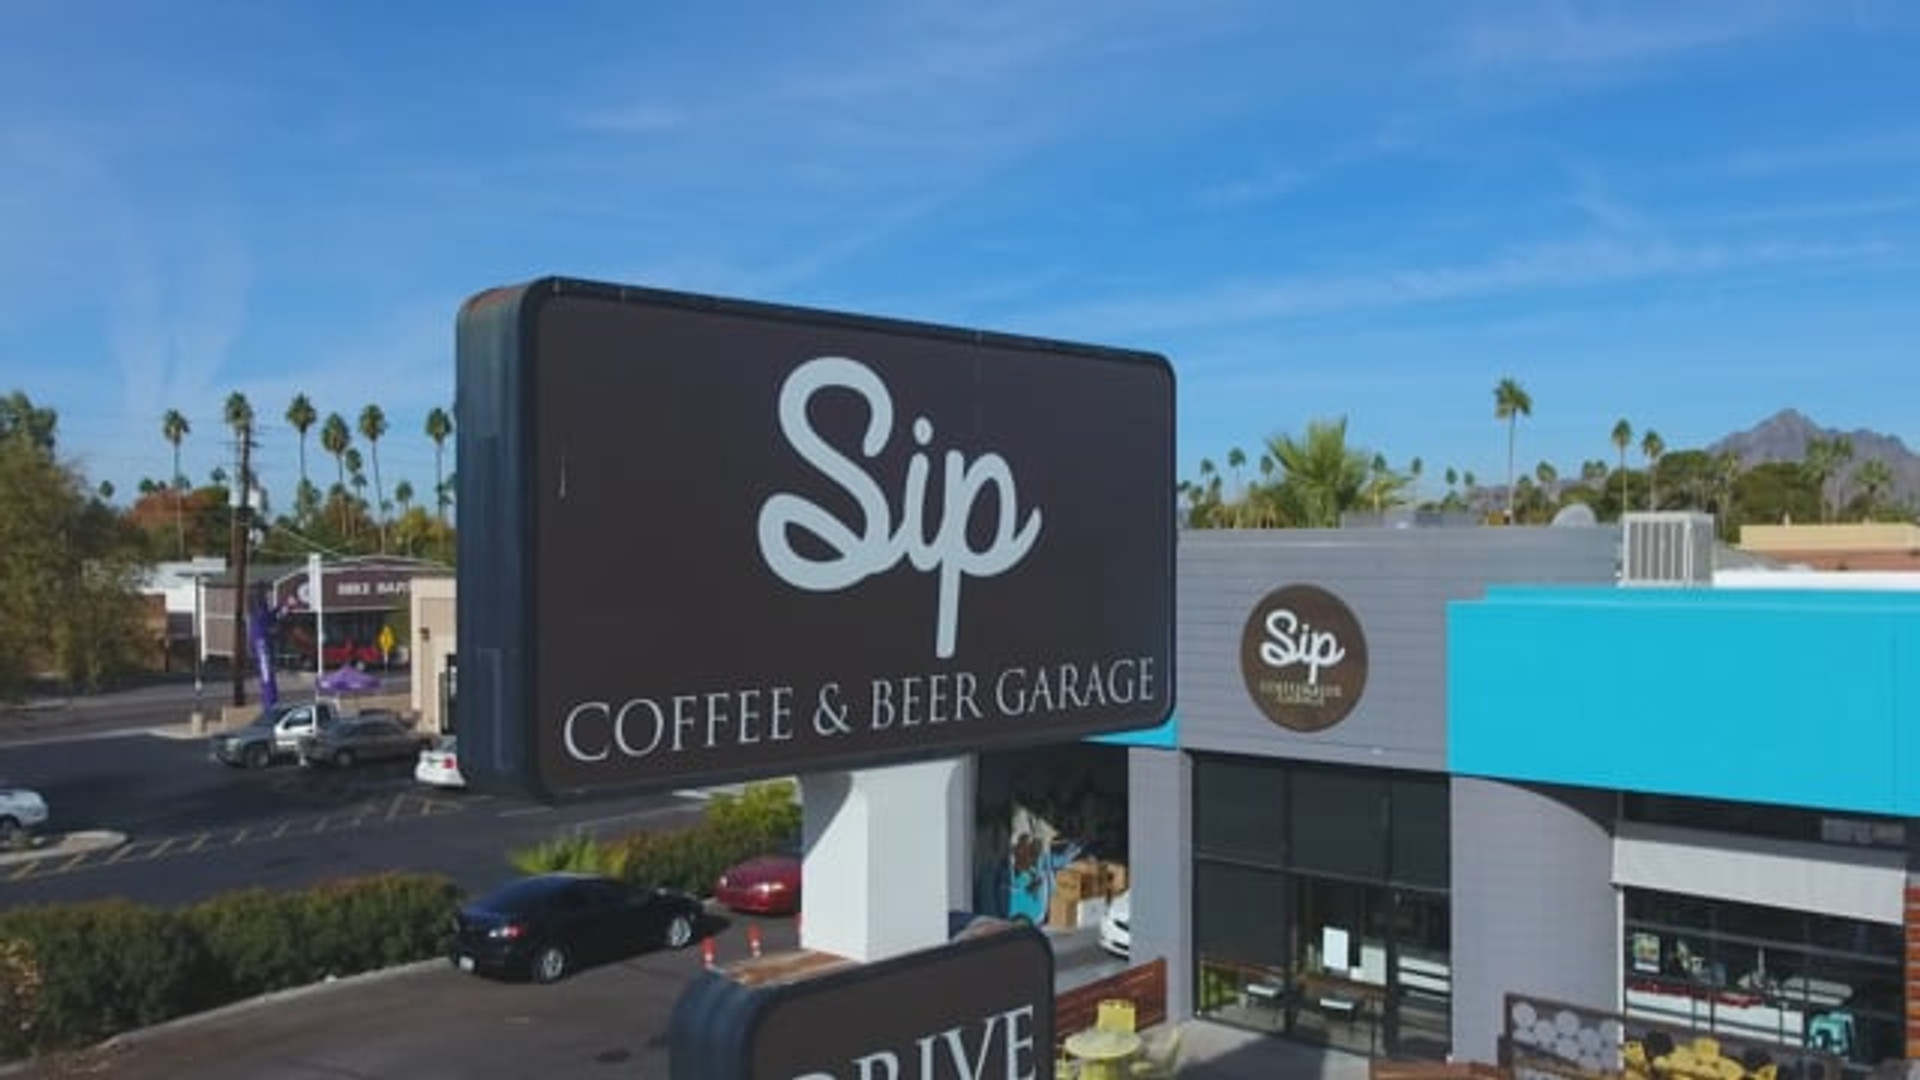 Sips Coffee & Beer Garden